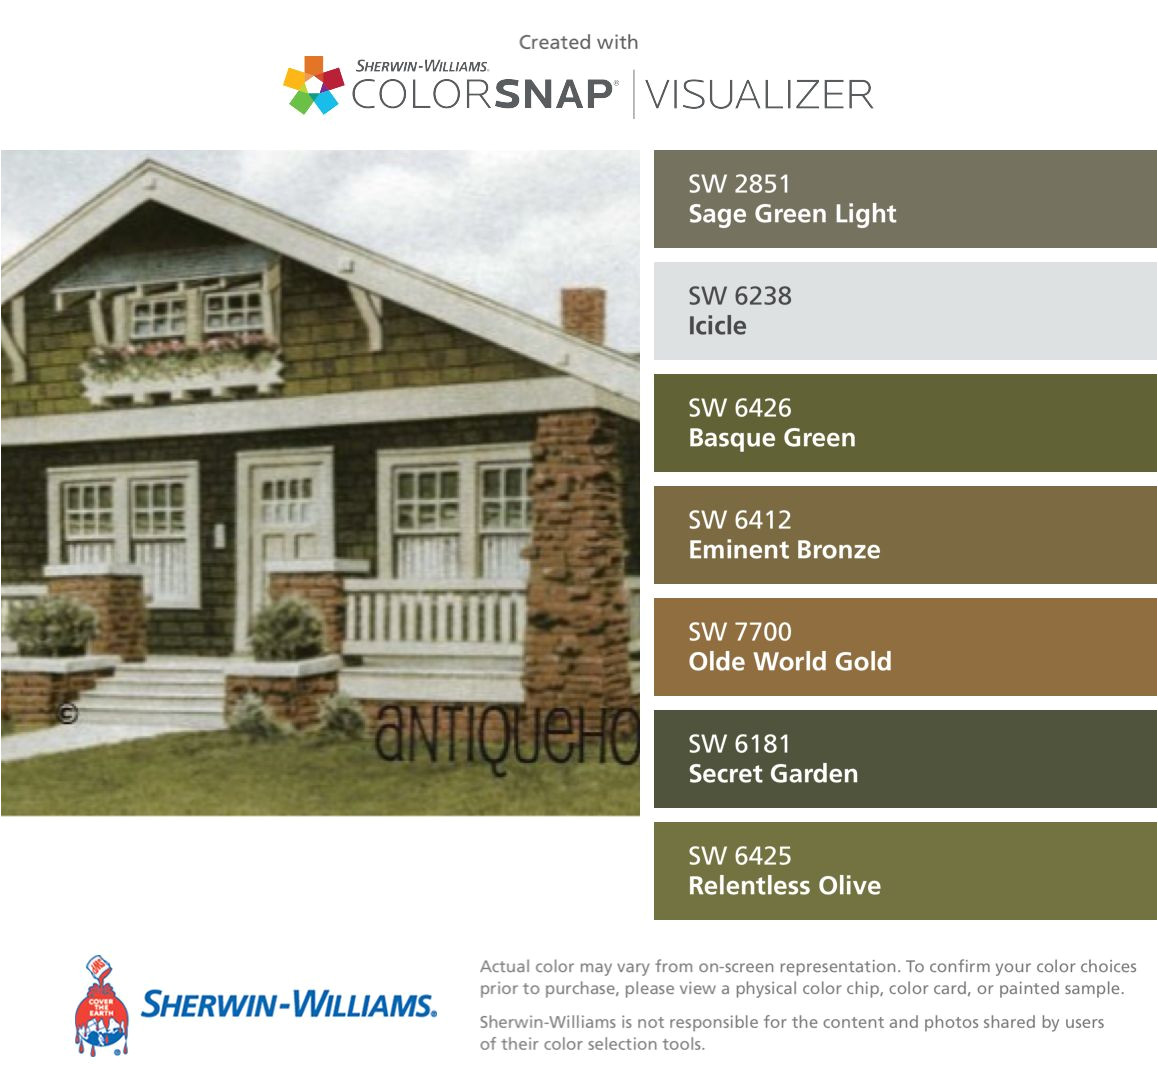 i found these colors with colorsnapa visualizer for iphone by sherwin williams sage green light sw 2851 icicle sw 6238 basque green sw 6426